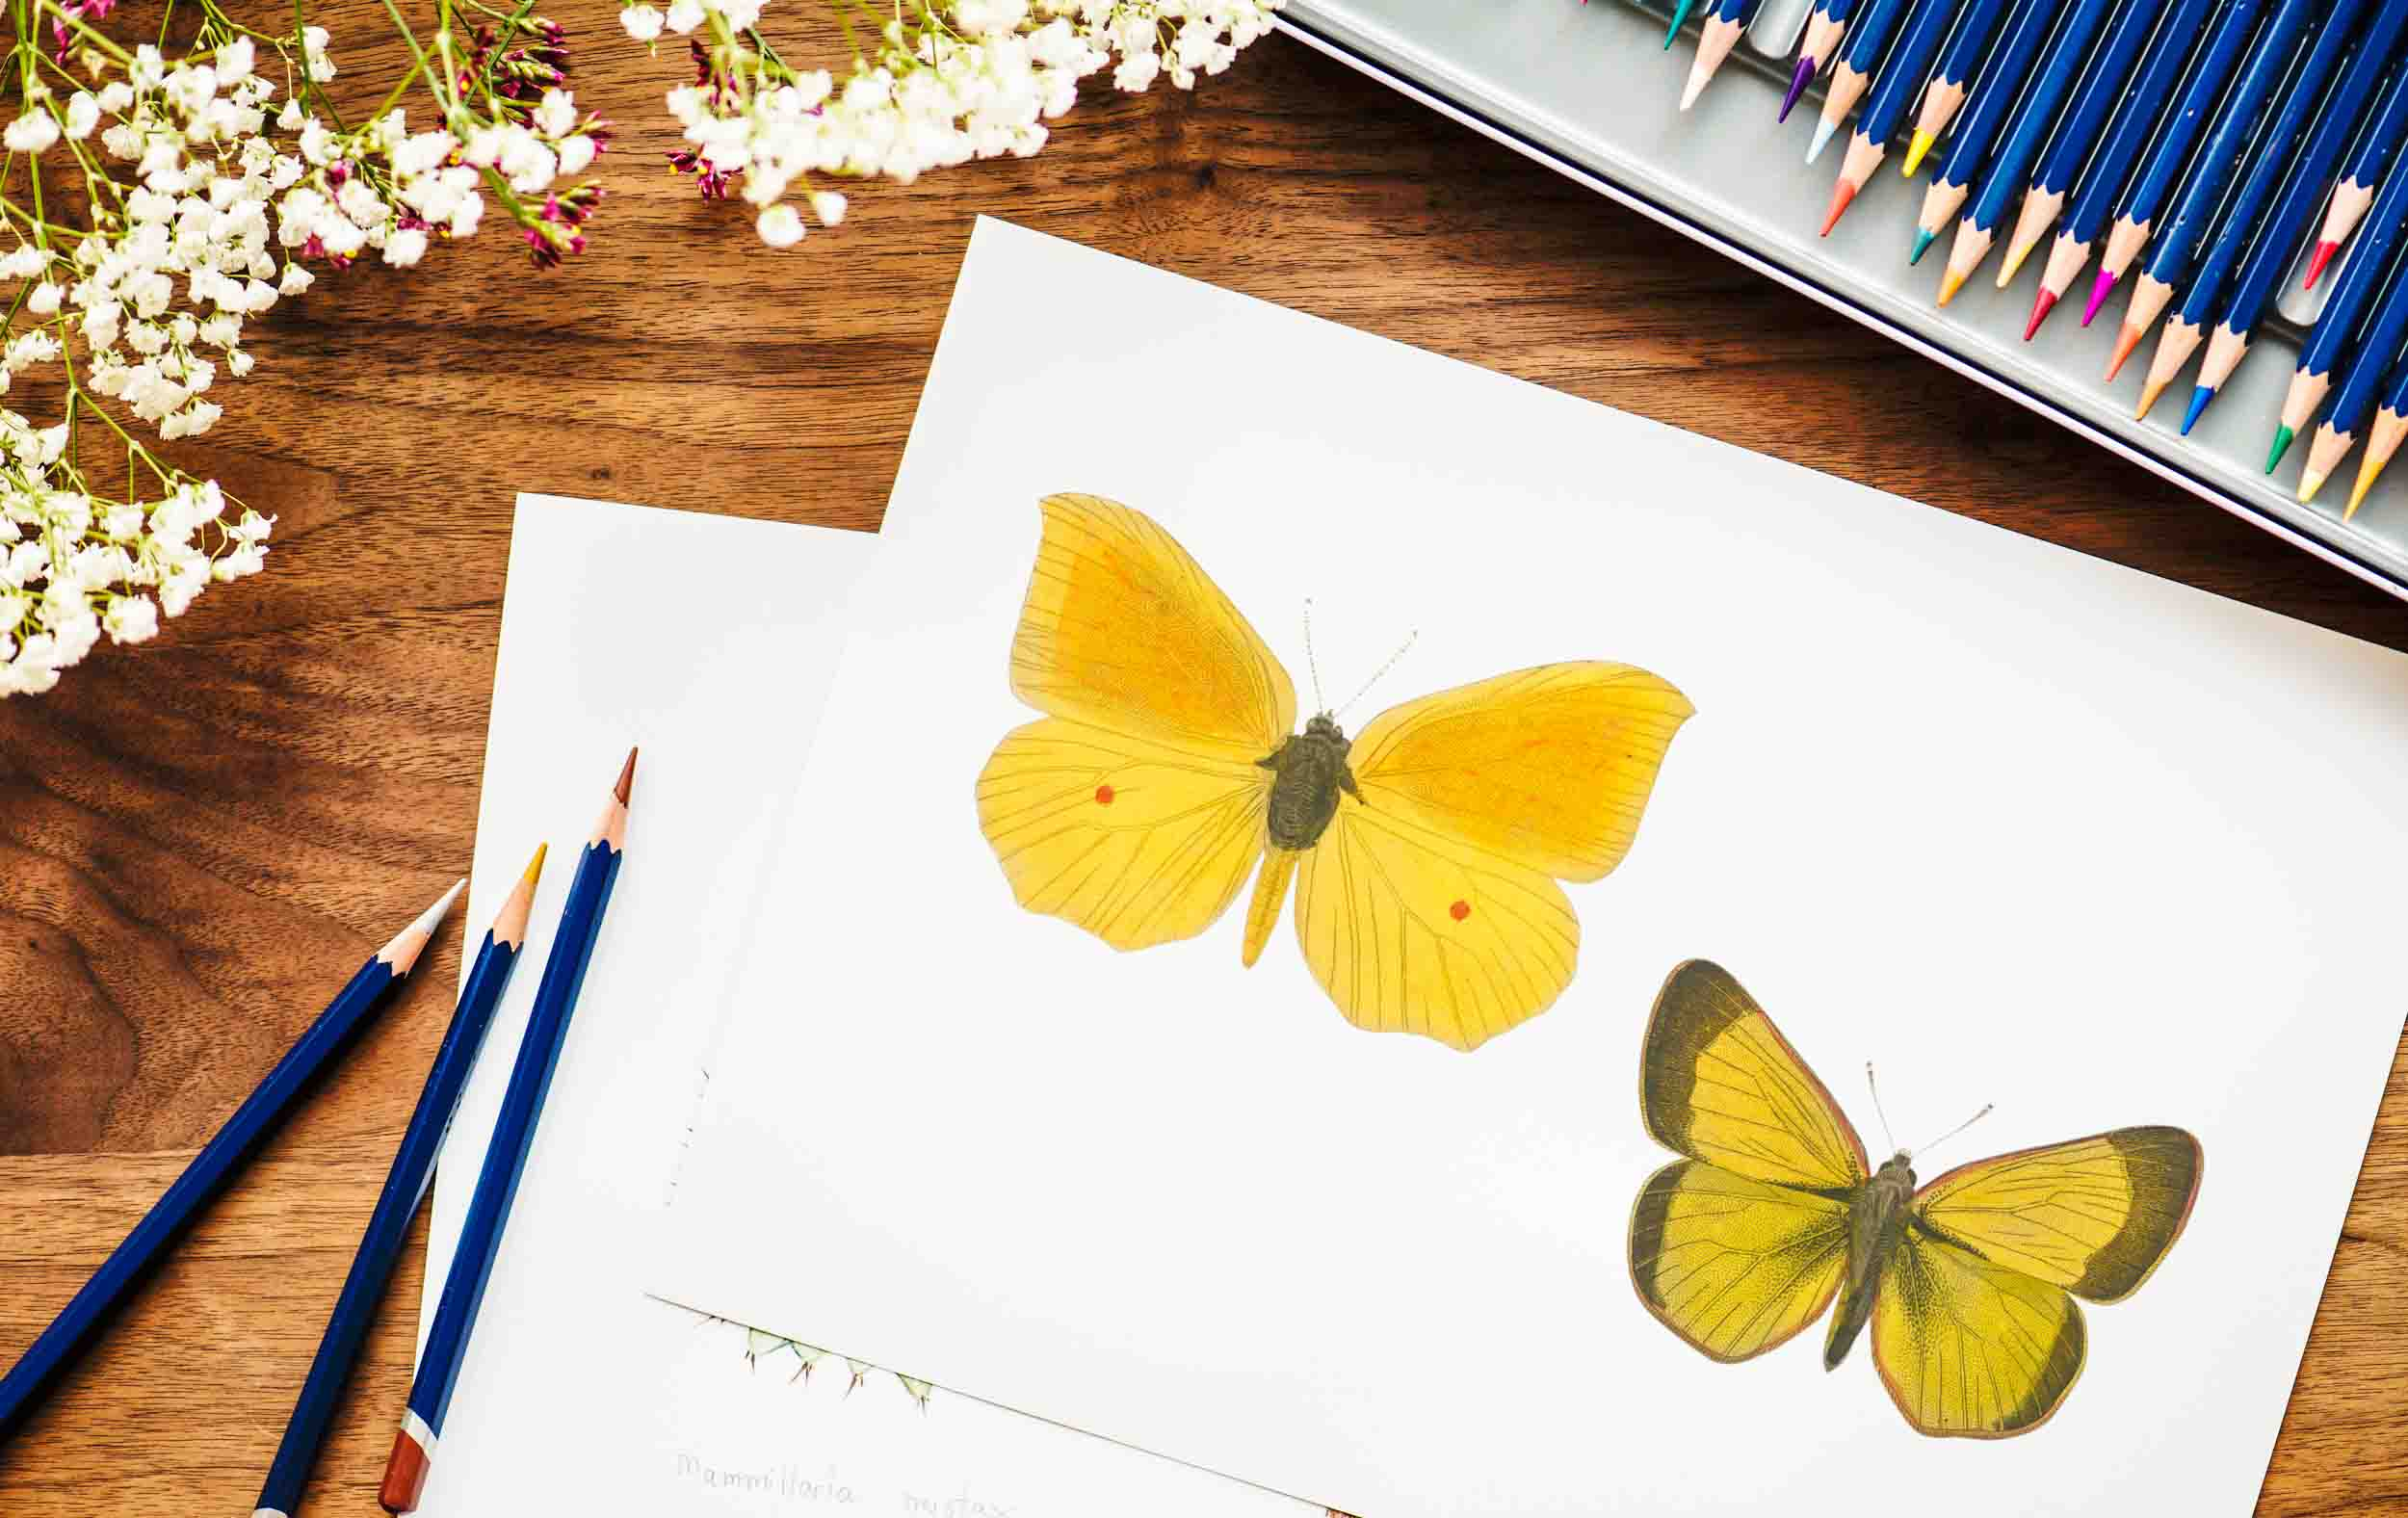 colored pencils on top of an illustration of two yellow butterflies